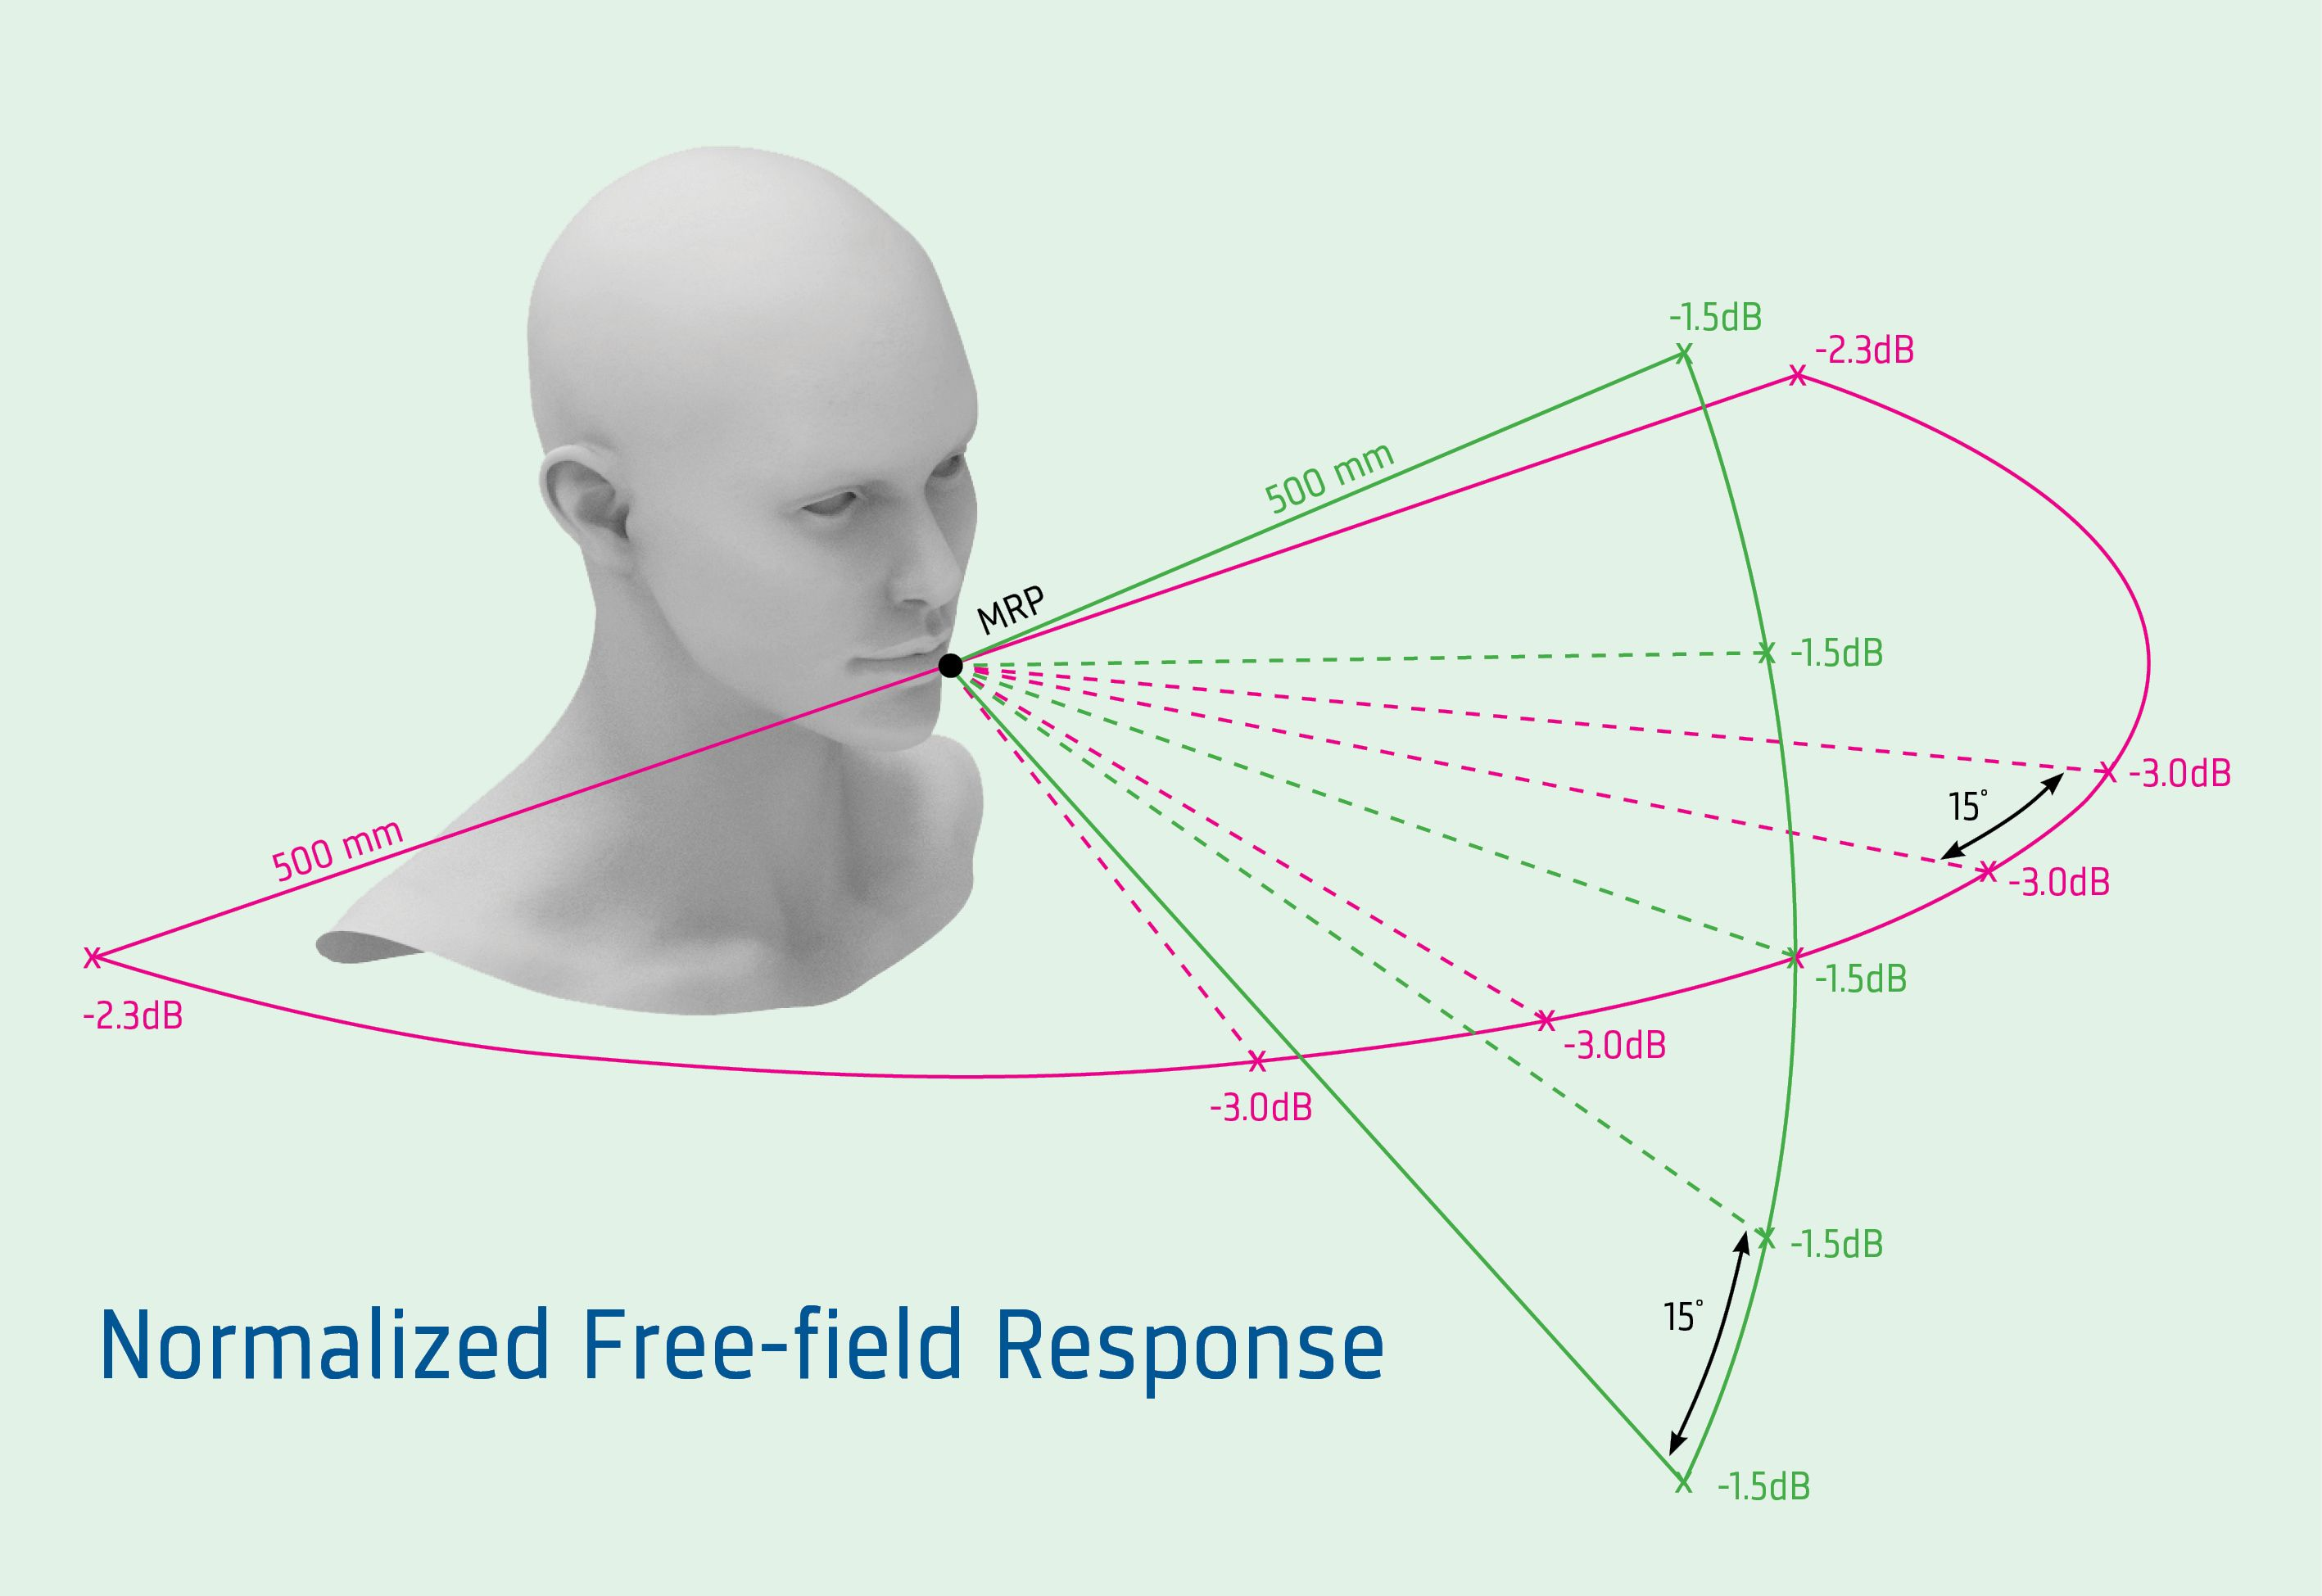 Normalized Free field response